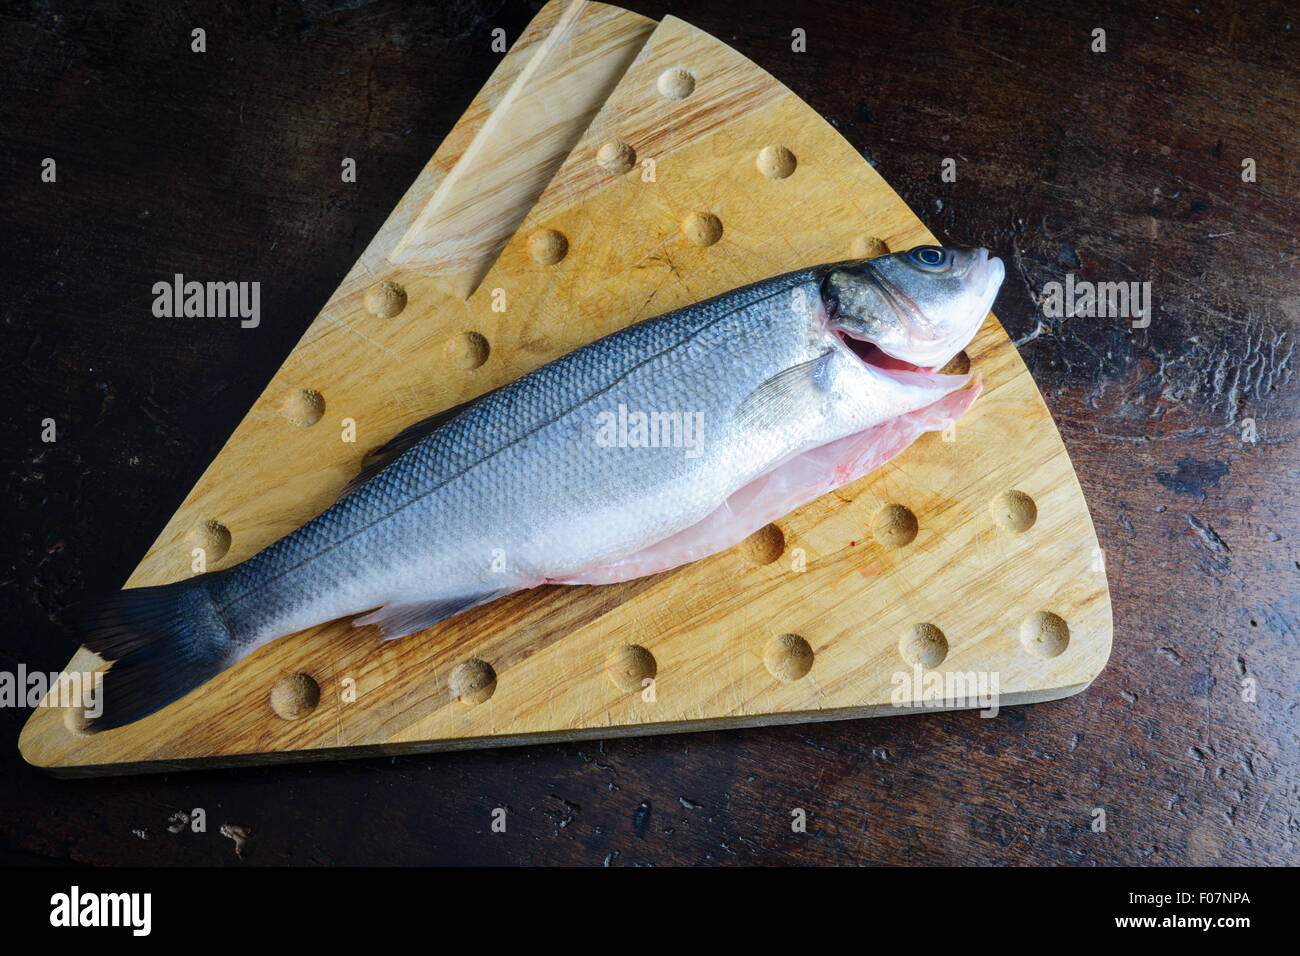 uncoucked fish on an old brown table - Stock Image